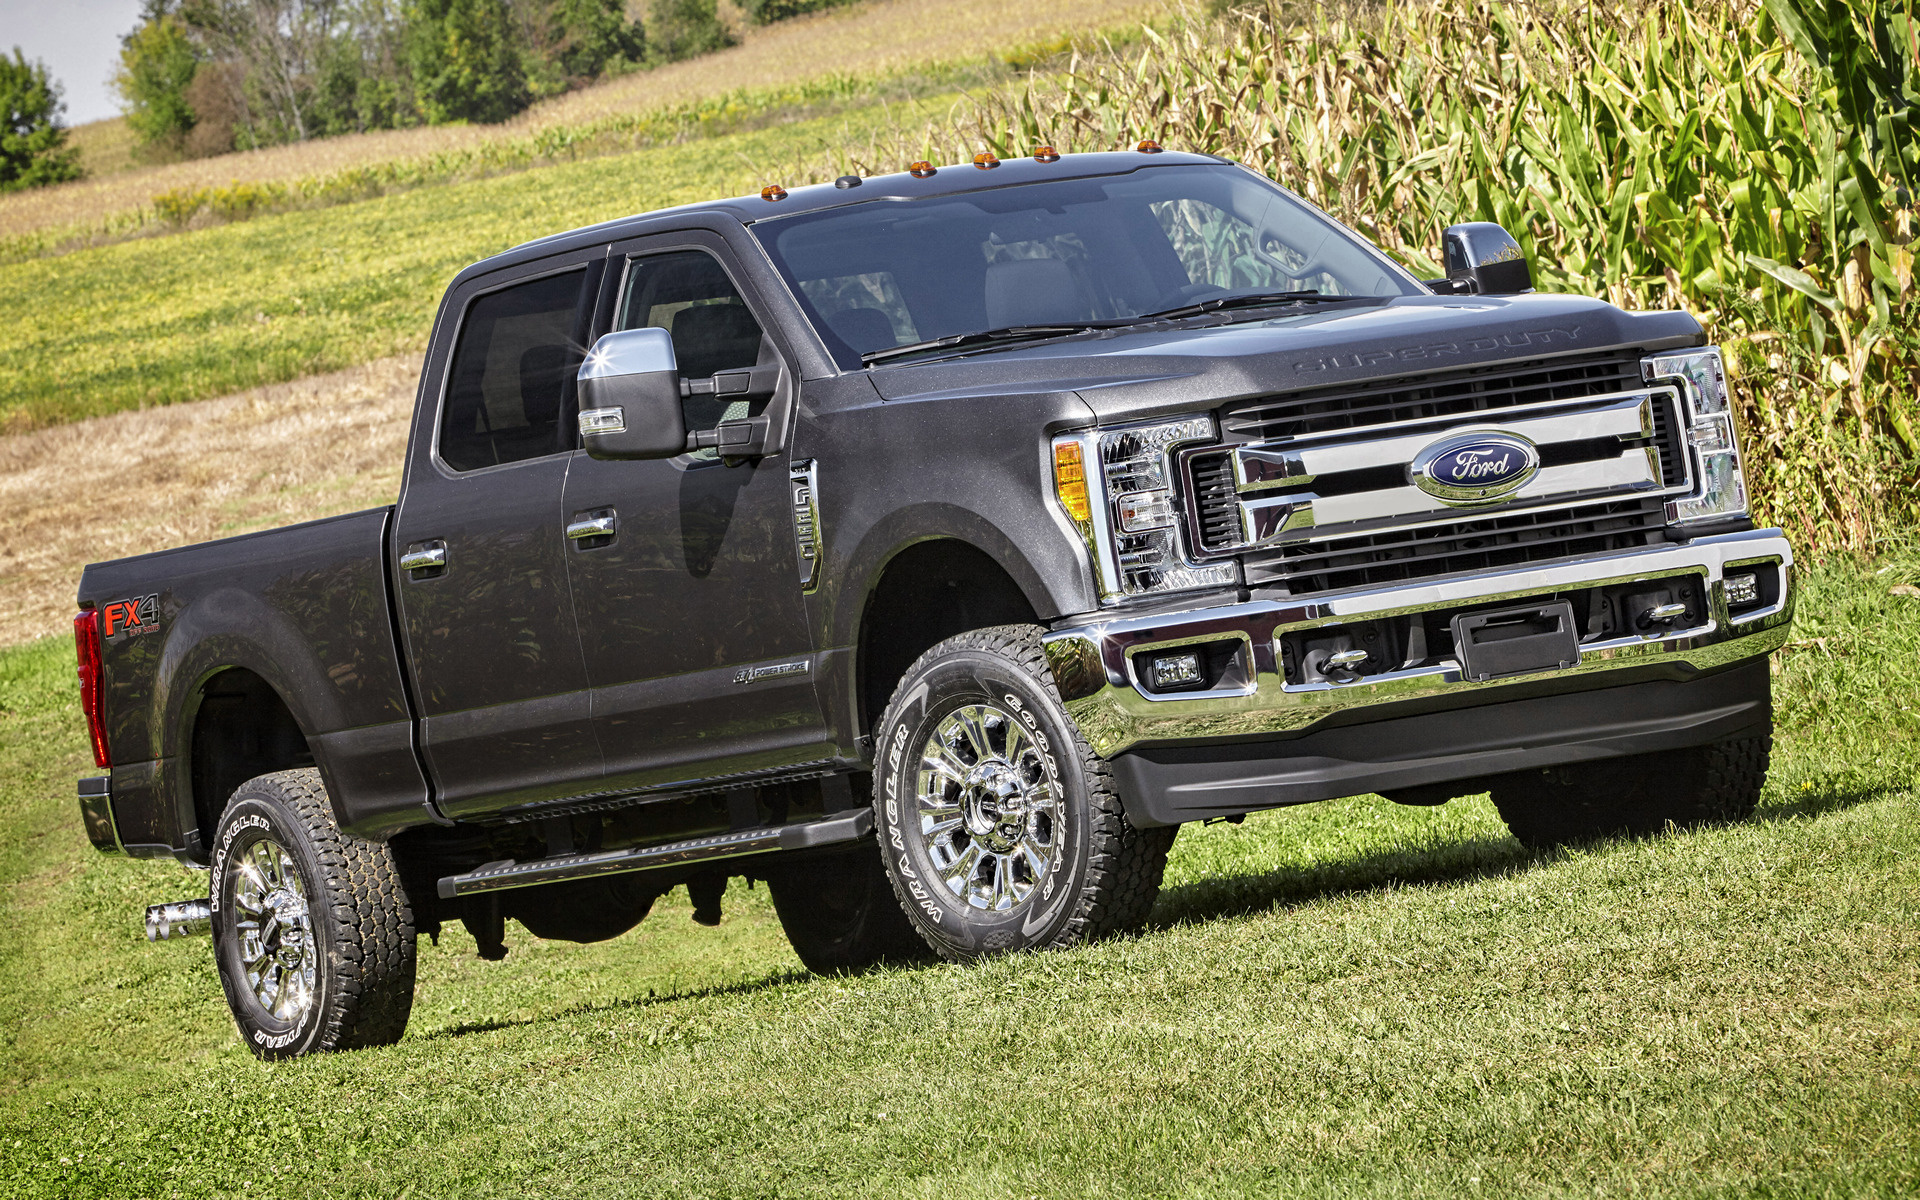 Ford F-250 XLT FX4 Crew Cab (2017) Wallpapers and HD ...